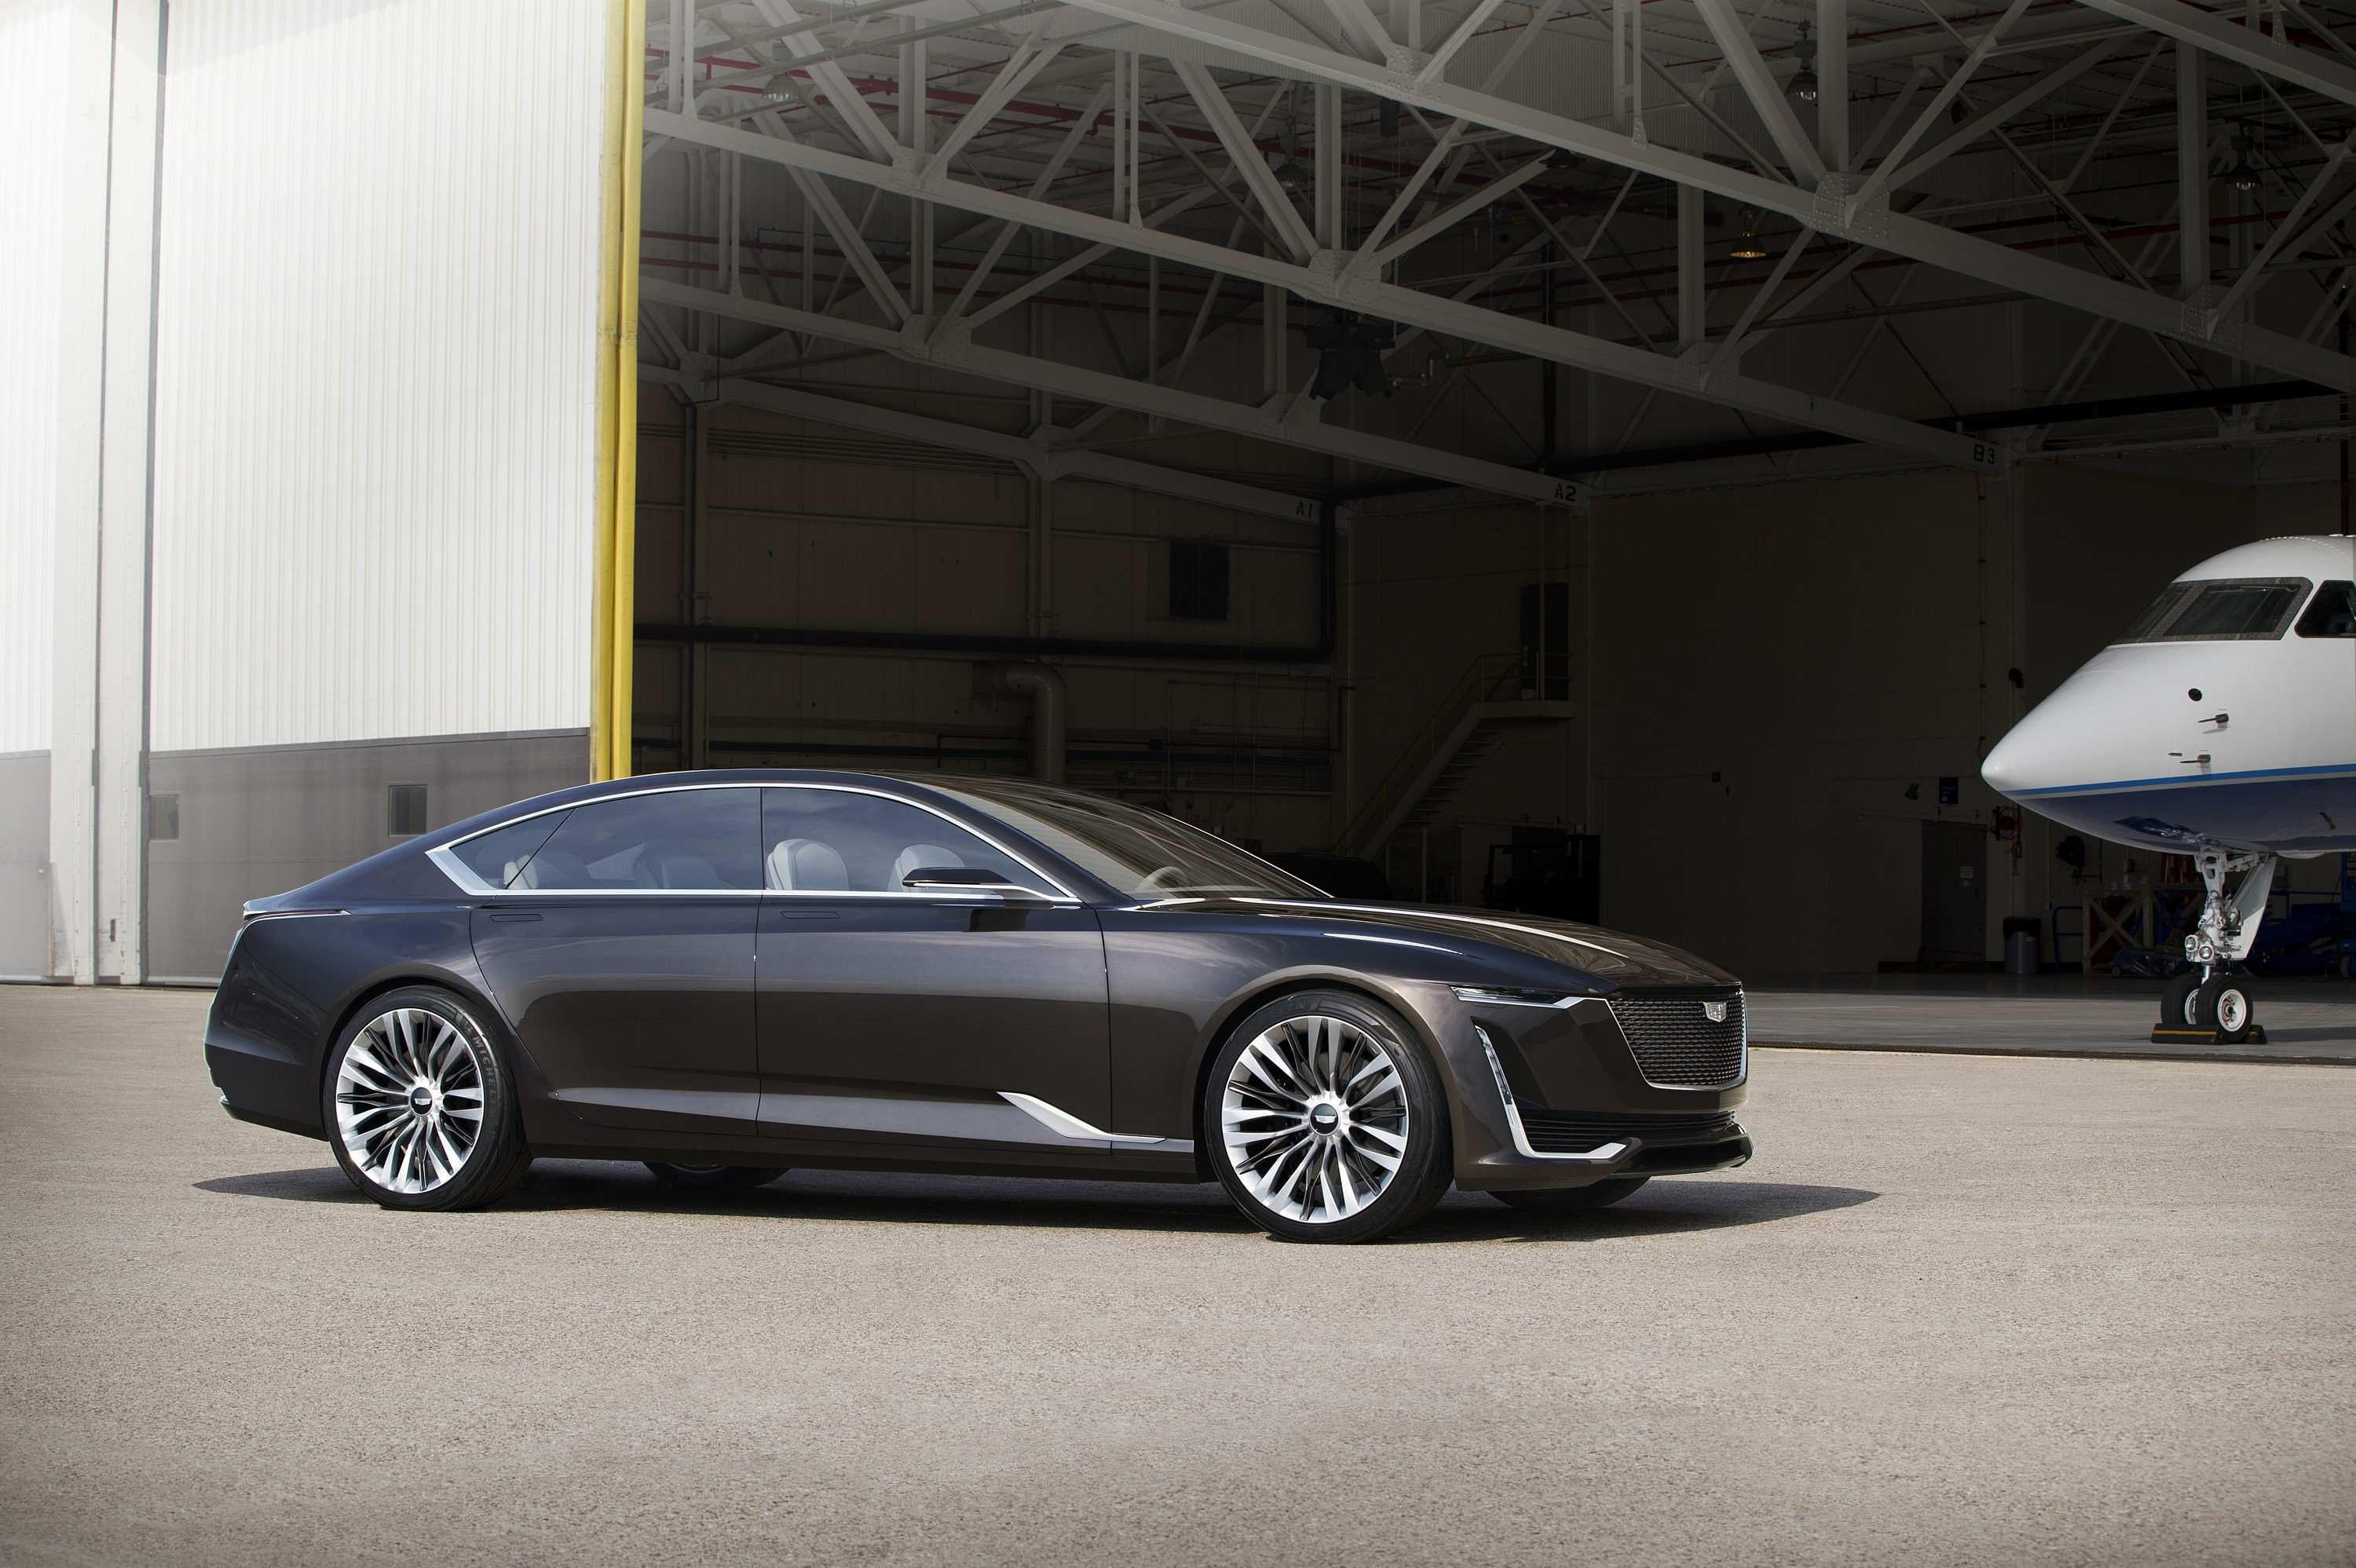 65 New 2020 Cadillac LTS Wallpaper